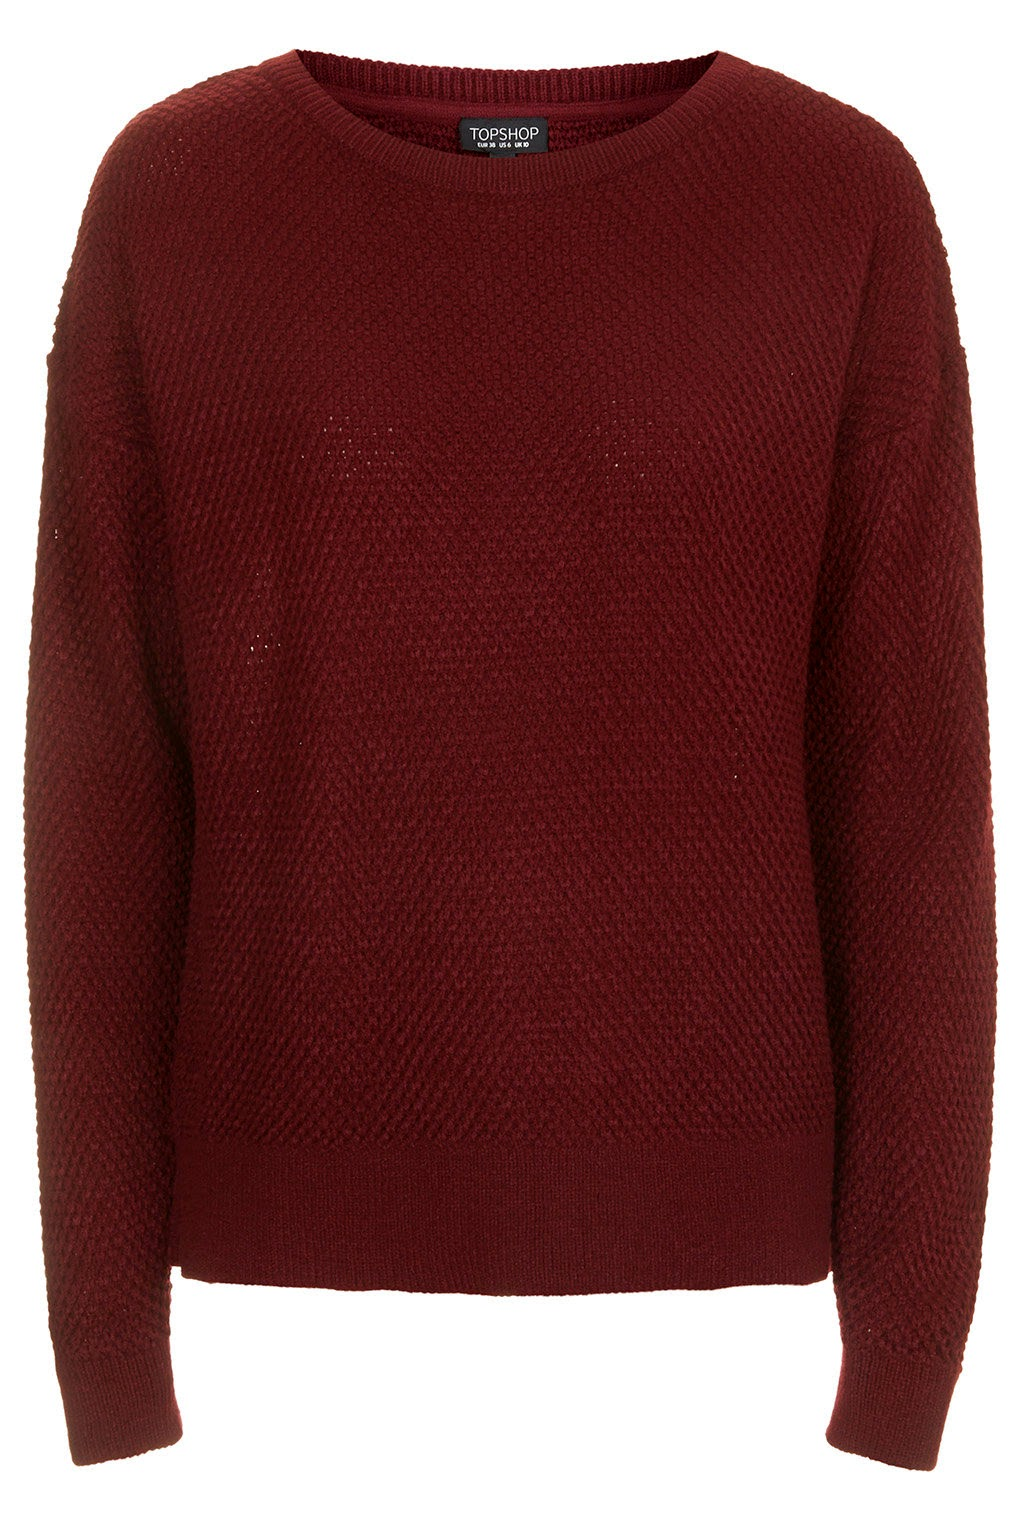 burgundy grunge jumper, wine jumper,